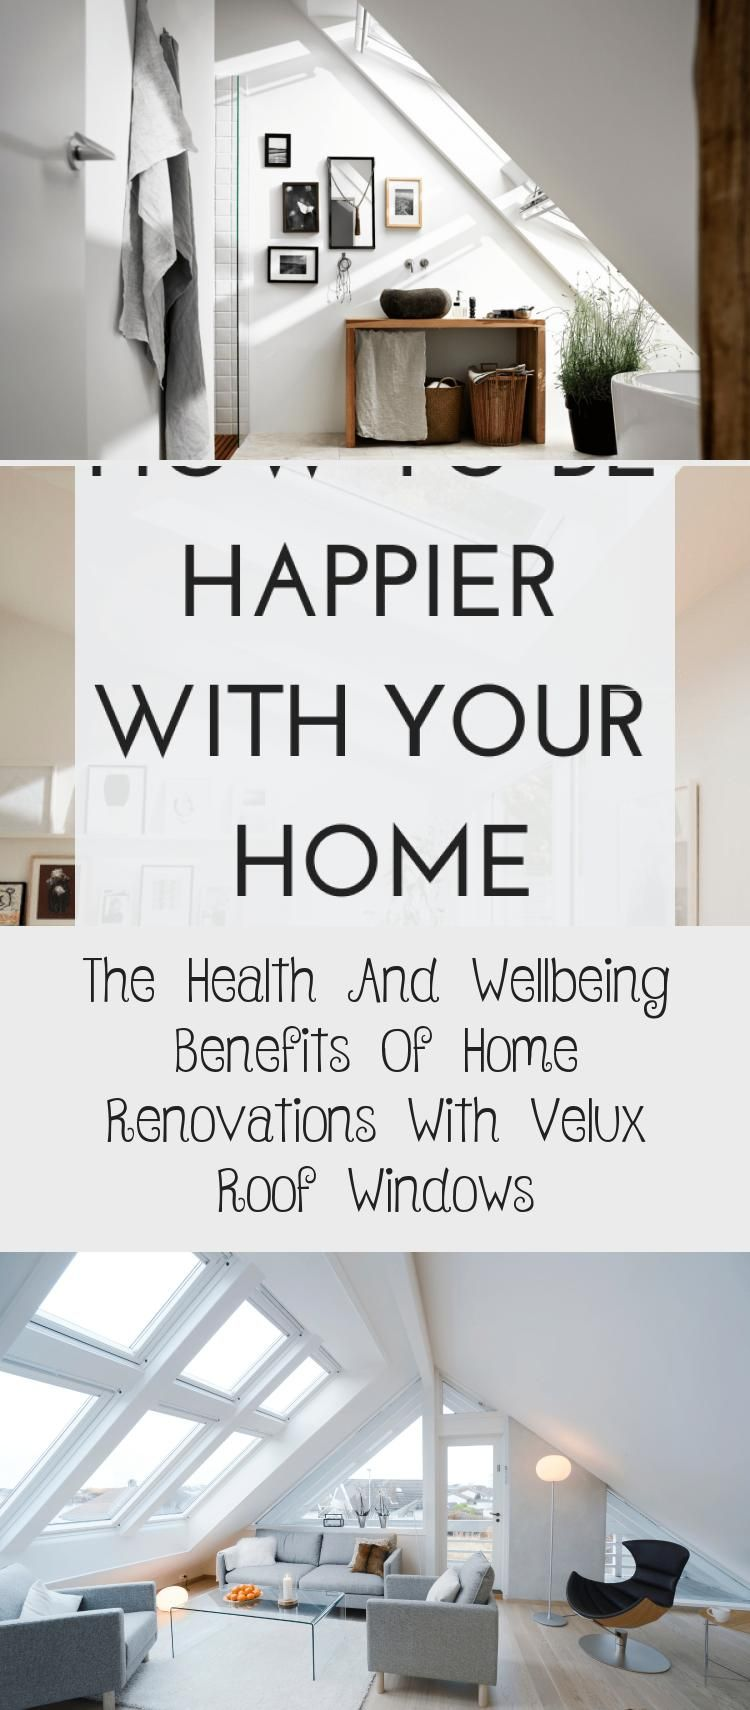 The Health And Wellbeing Benefits Of Home Renovations With Velux Roof Windows Home Renovation Costs Renovations Roof Window